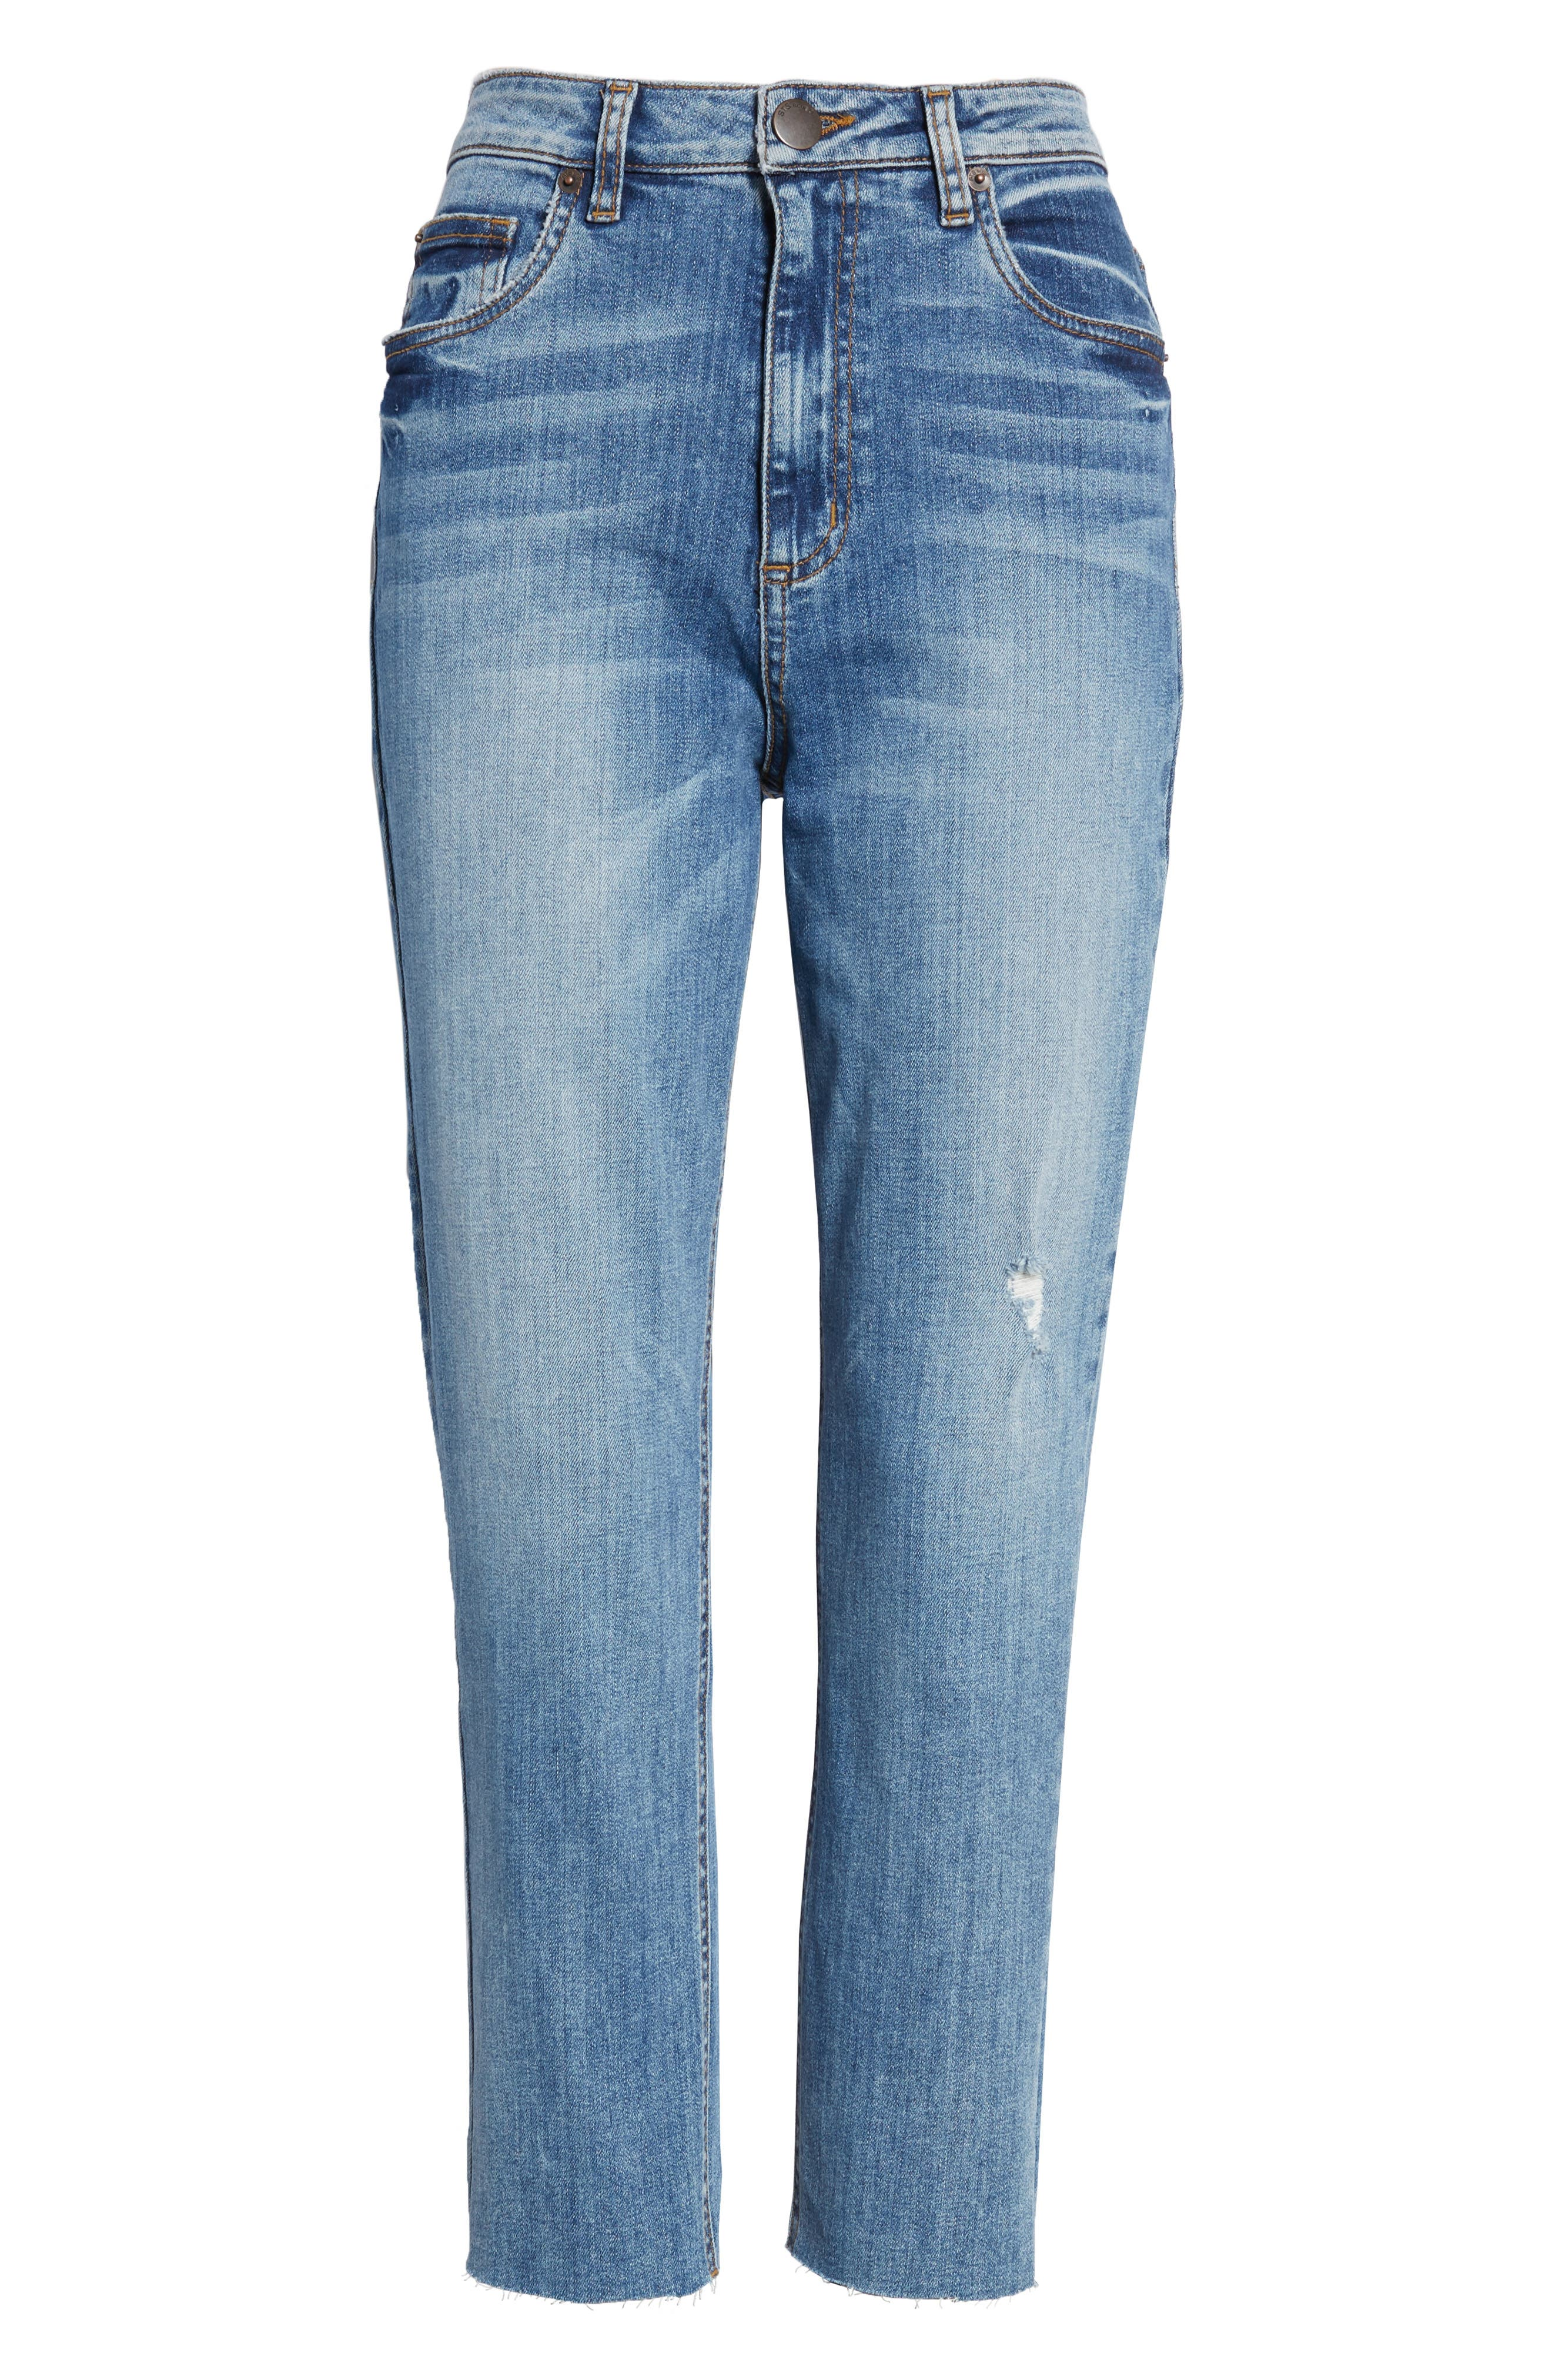 STS BLUE, Alicia High Waist Crop Mom Jeans, Alternate thumbnail 7, color, PROCTOR